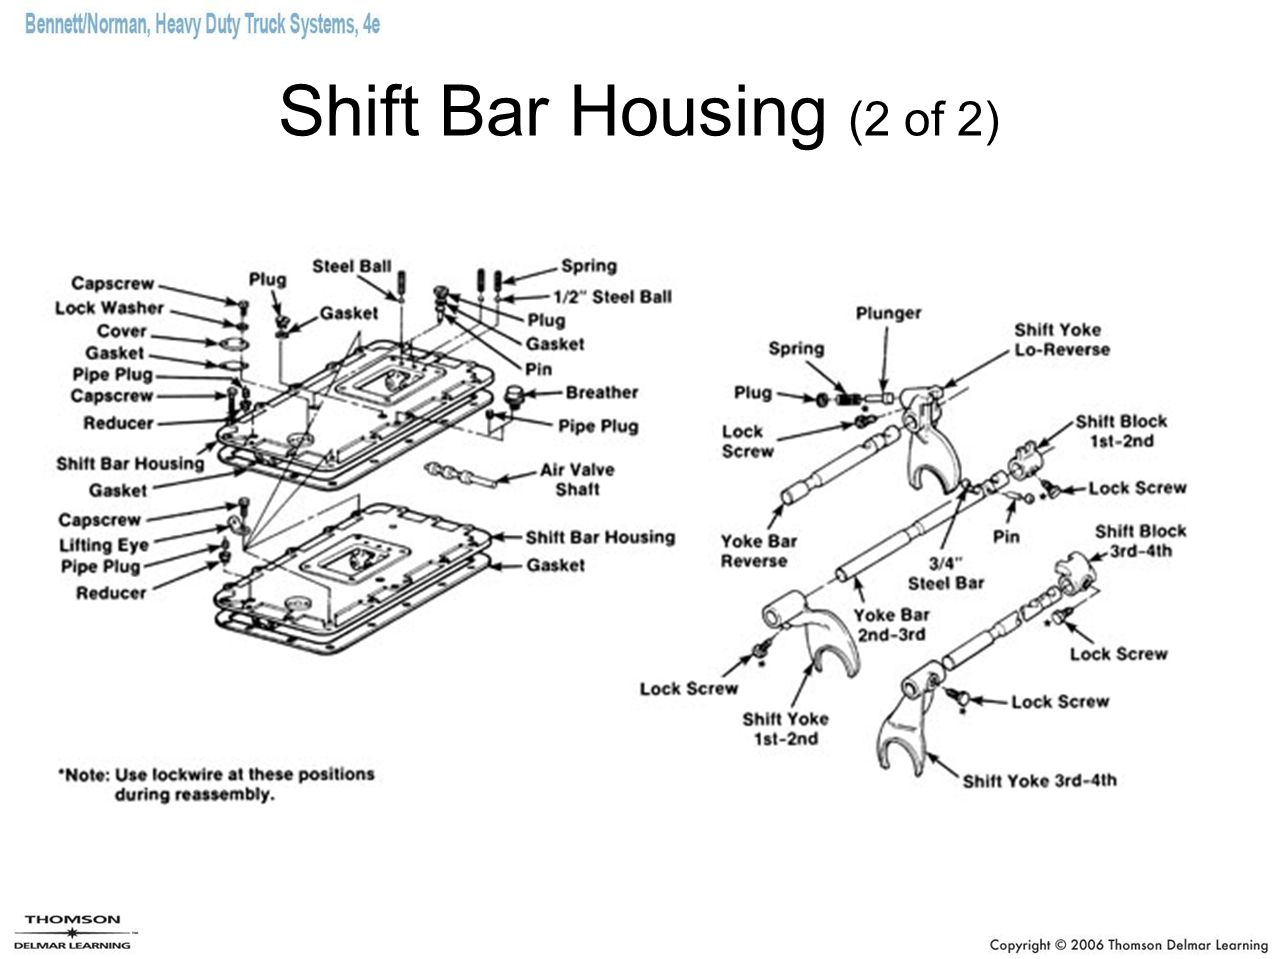 Shift Bar Housing (2 of 2)